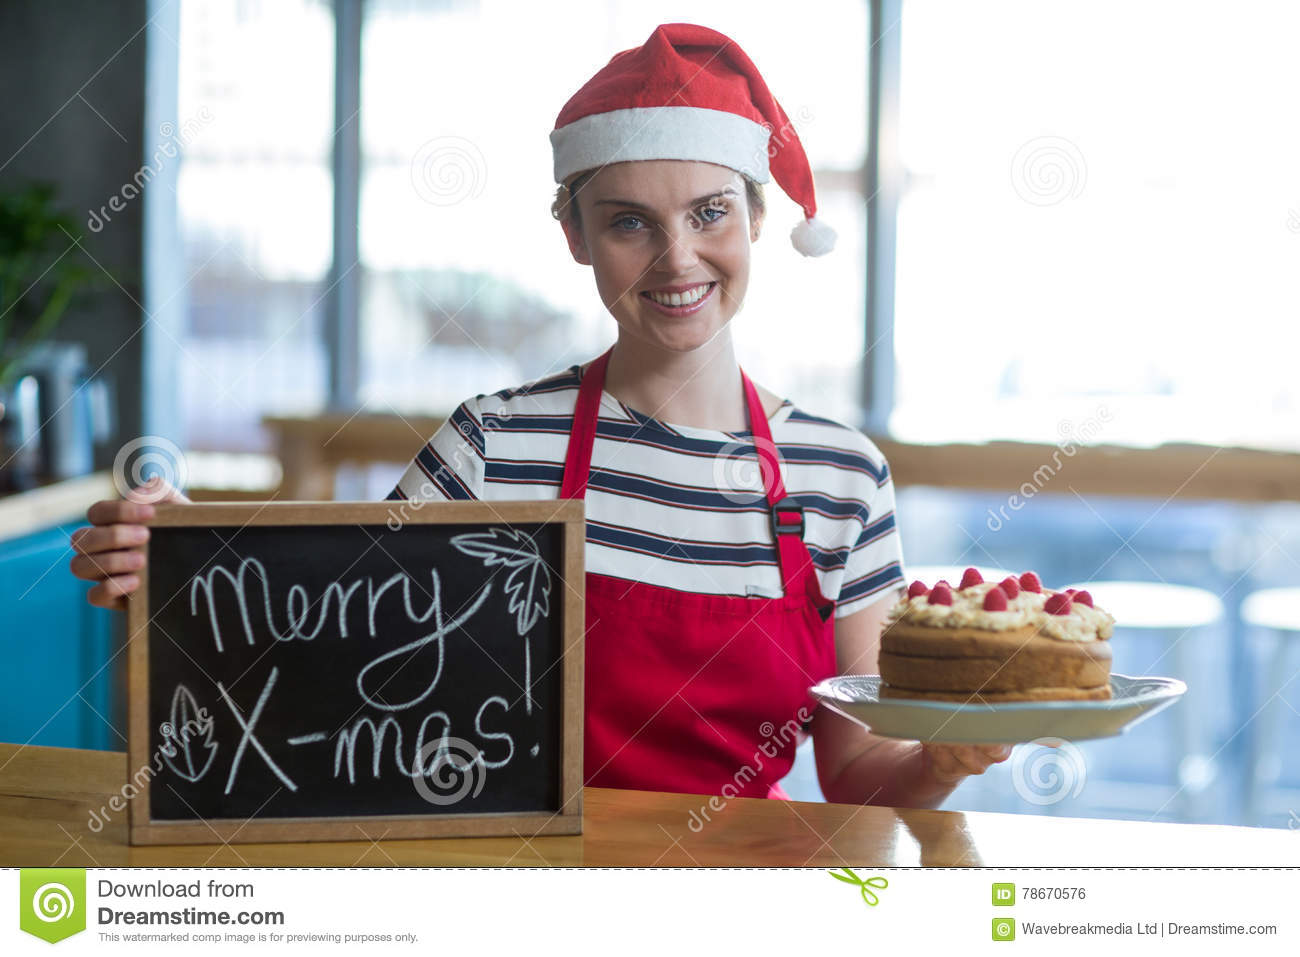 portrait of waitress holding slate with merry x-mas sign and cake